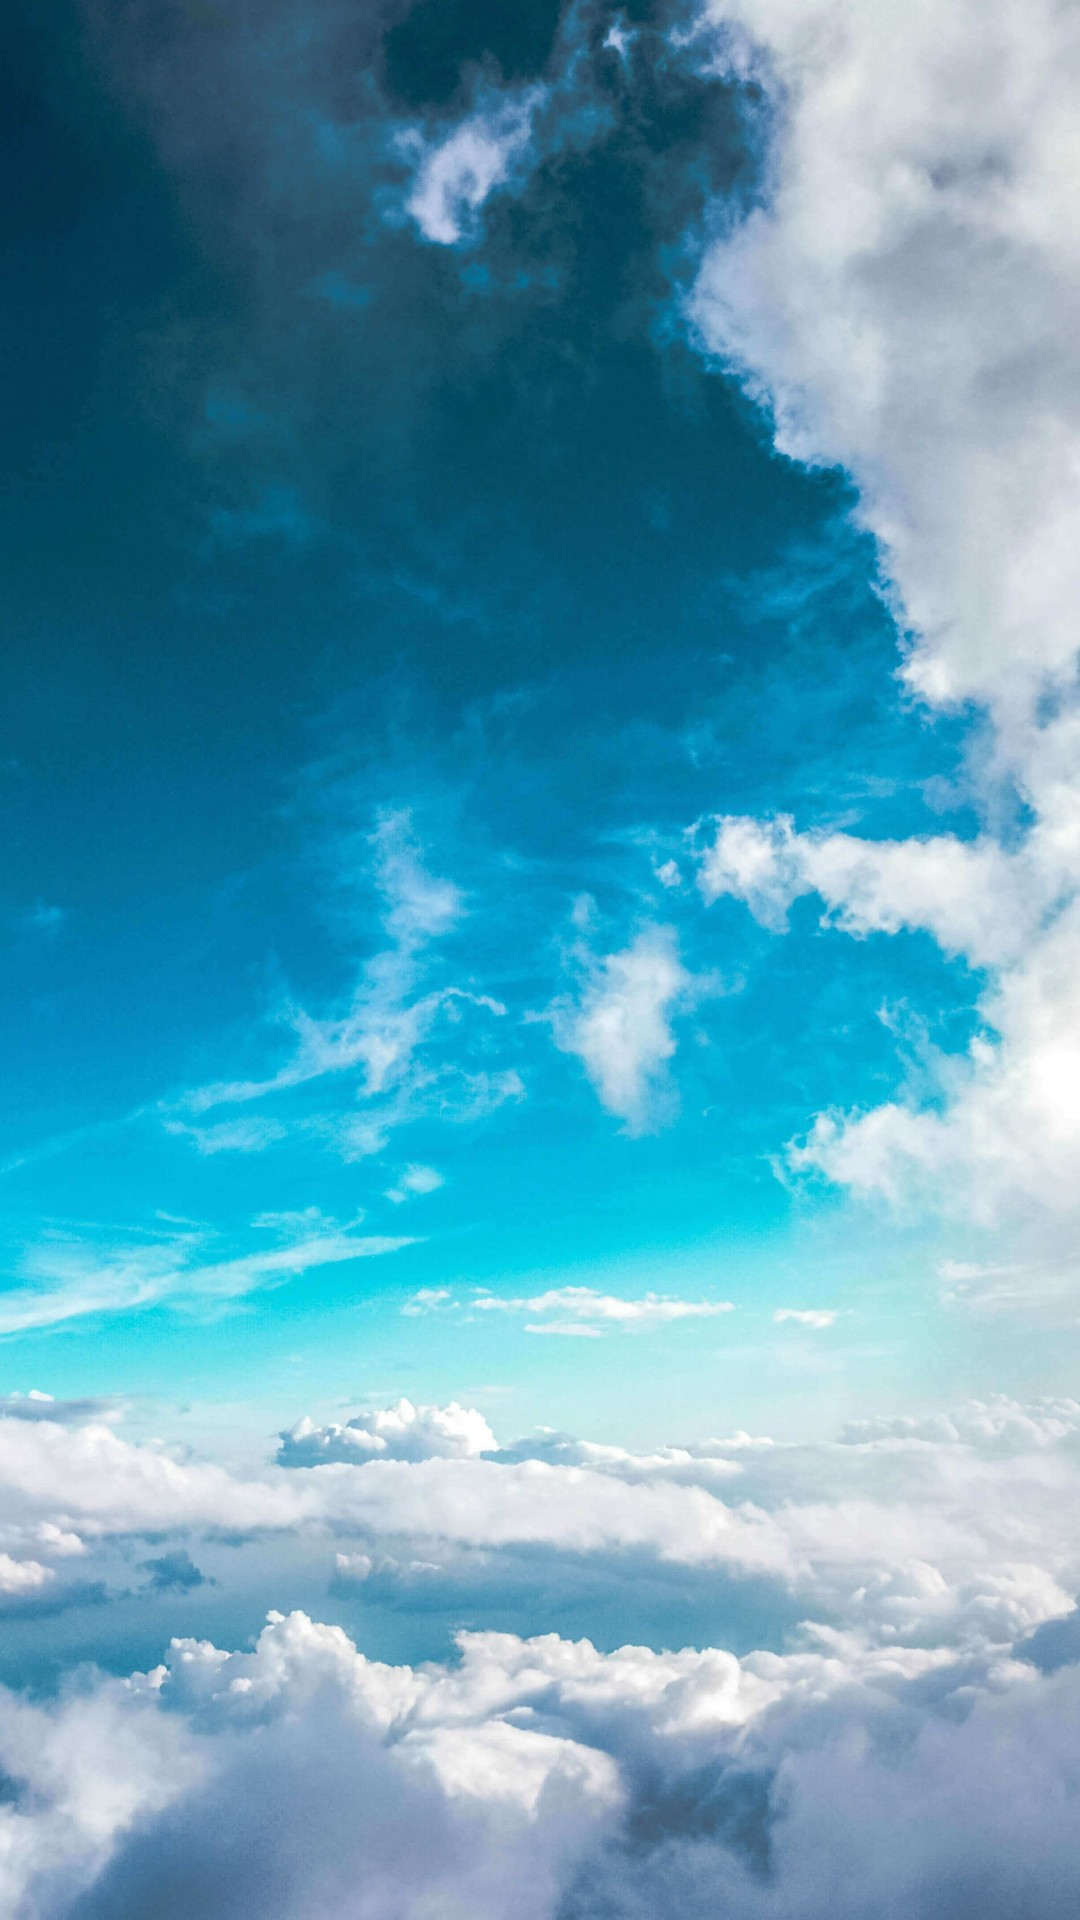 Cloudy Blue Sky Wallpaper for SONY Xperia Z1